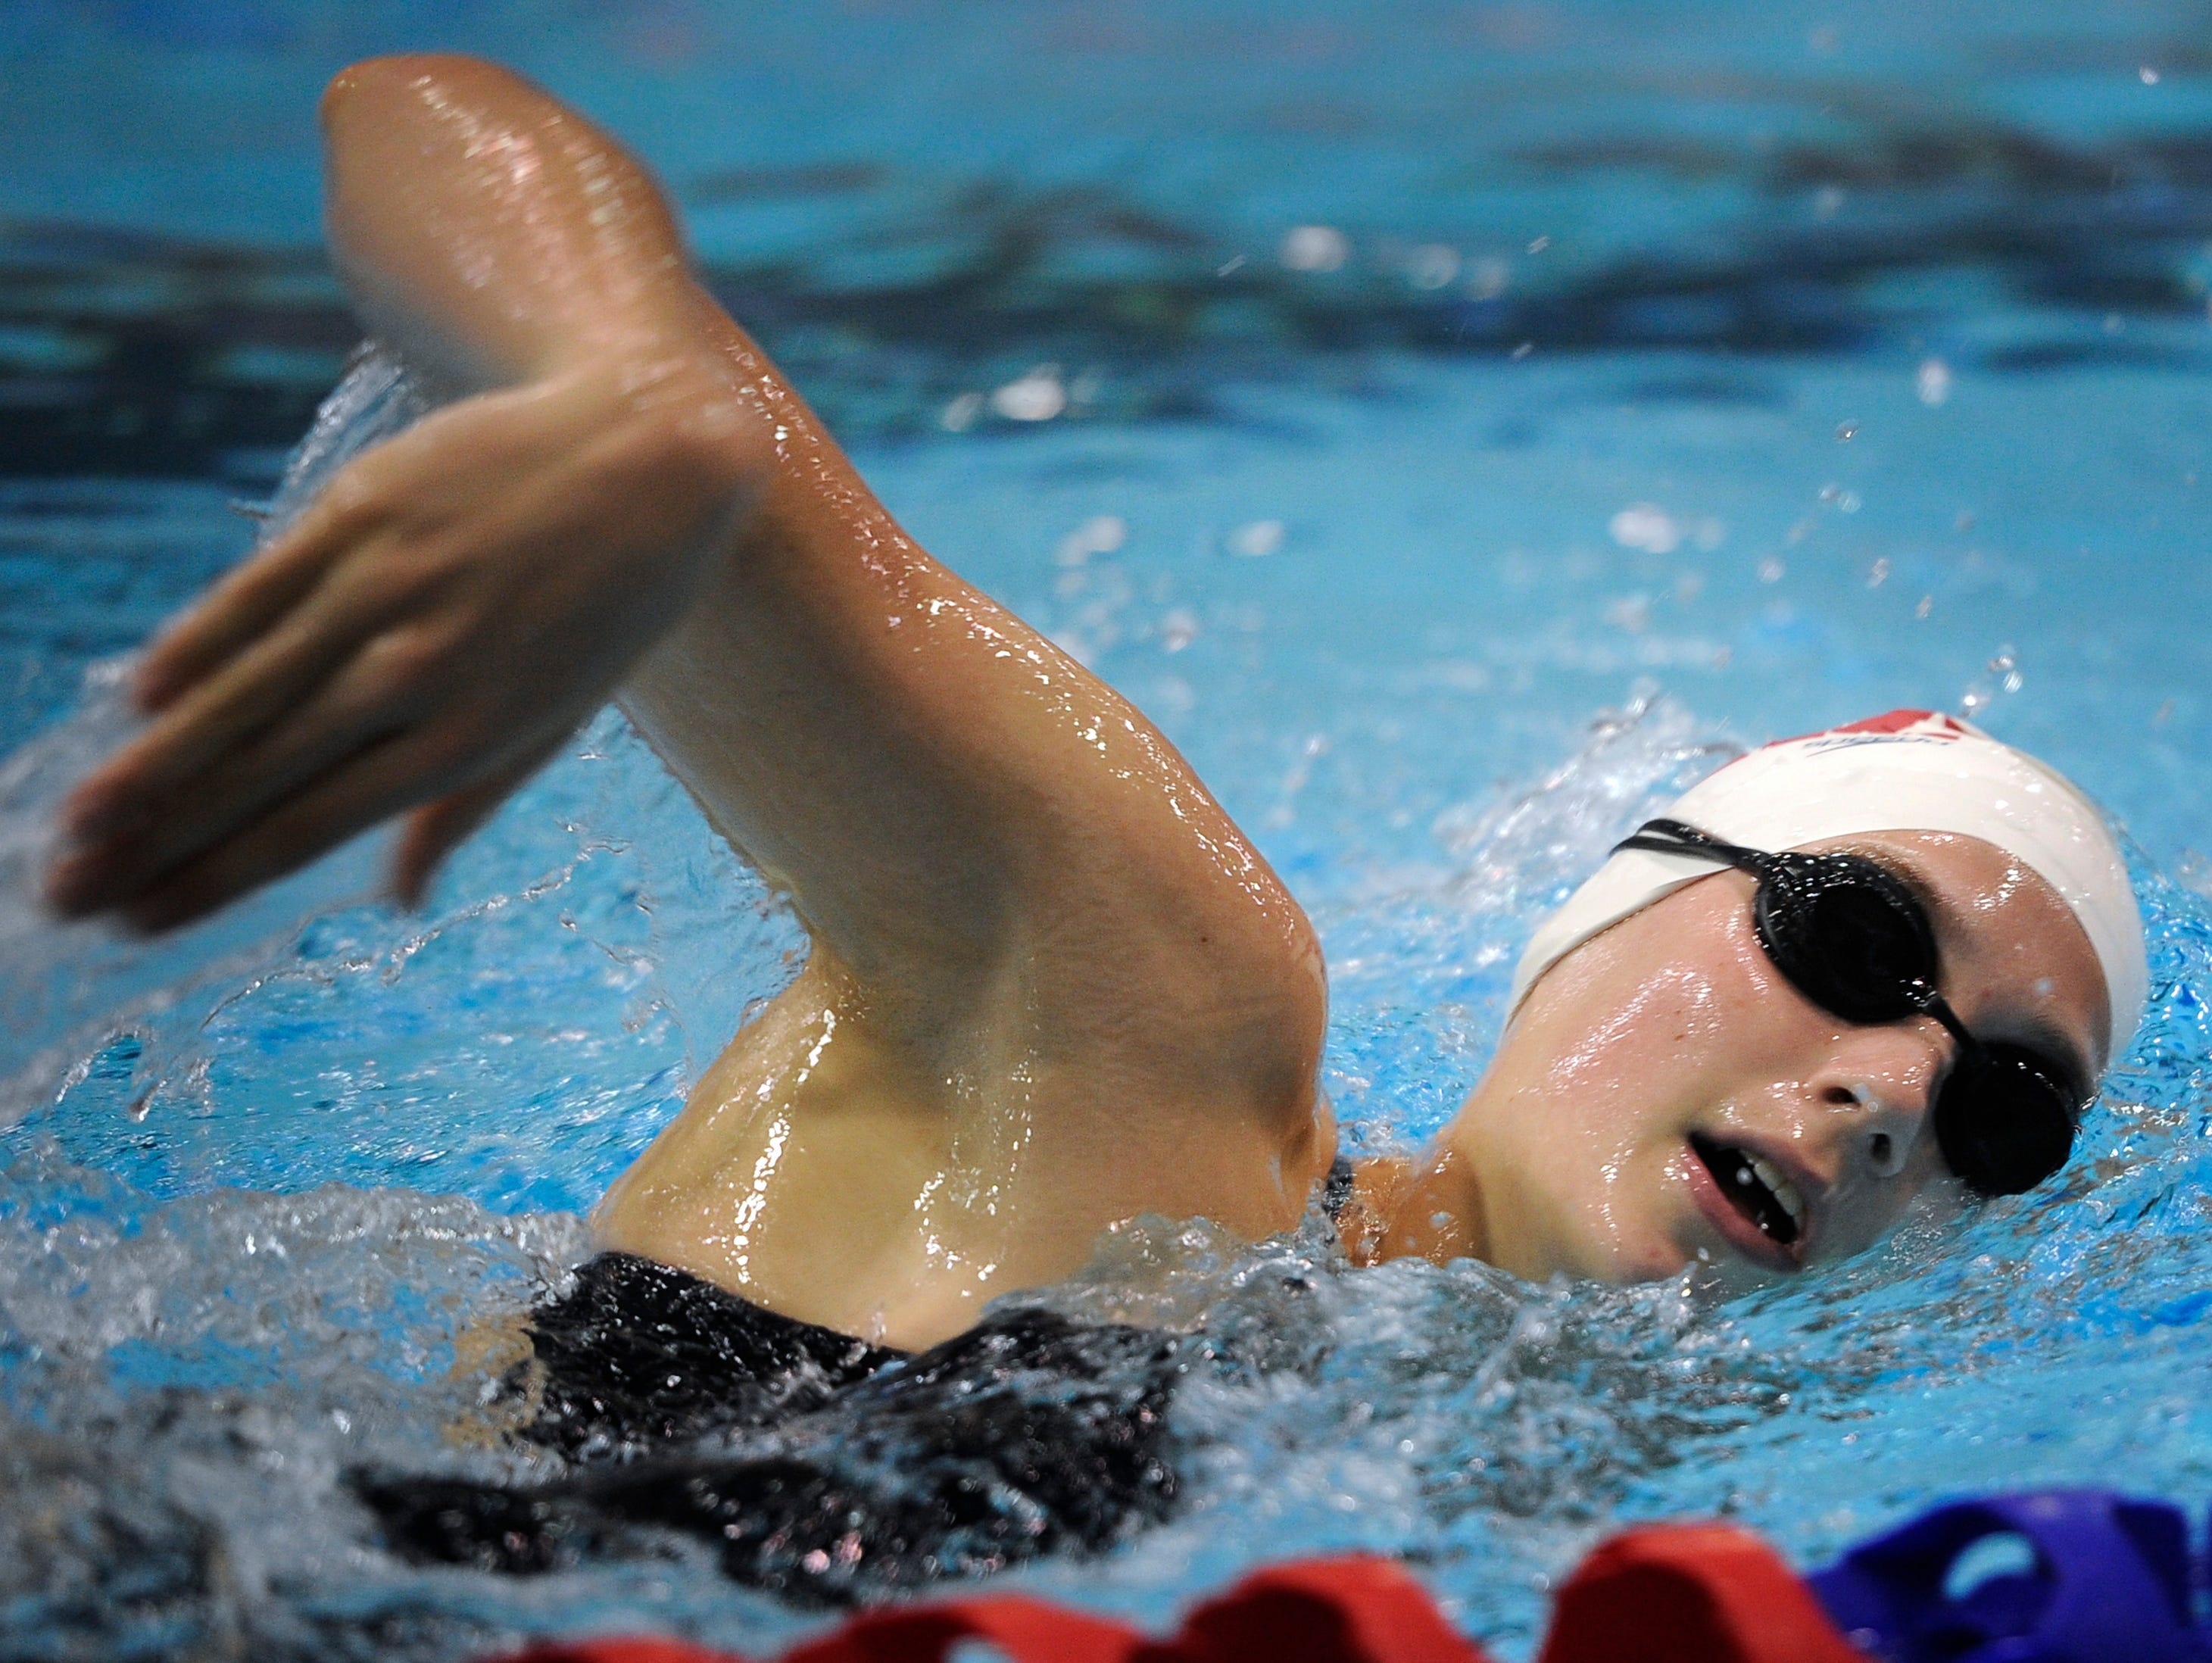 Alex Walsh swims as she practices for the Olympic Trials Wednesday June 22, 2016, in Nashville, Tenn.